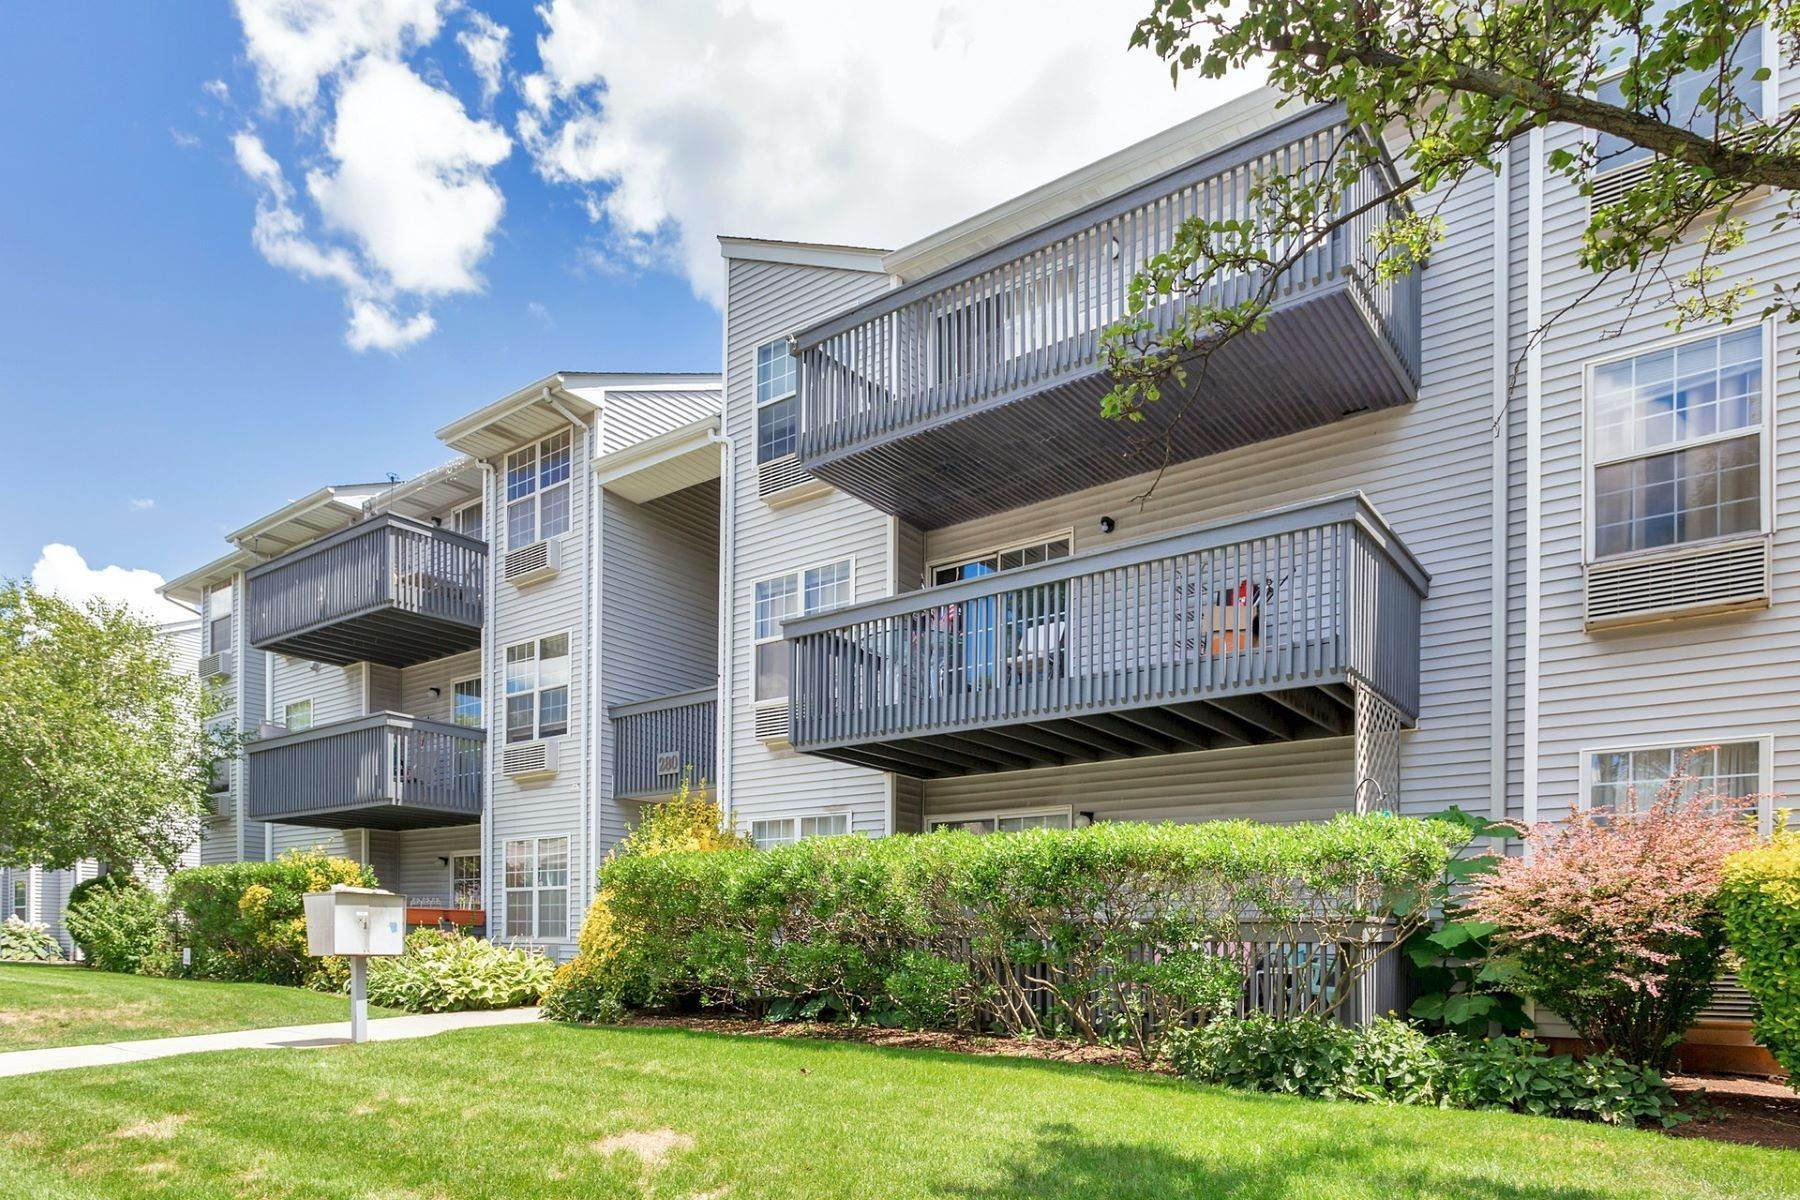 Condominiums for Sale at LOVELY SOUTH POINT COMPLEX IS THE SETTING FOR A UNIQUE UNIT 280 Kipp St. #3B-C Hackensack, New Jersey 07601 United States